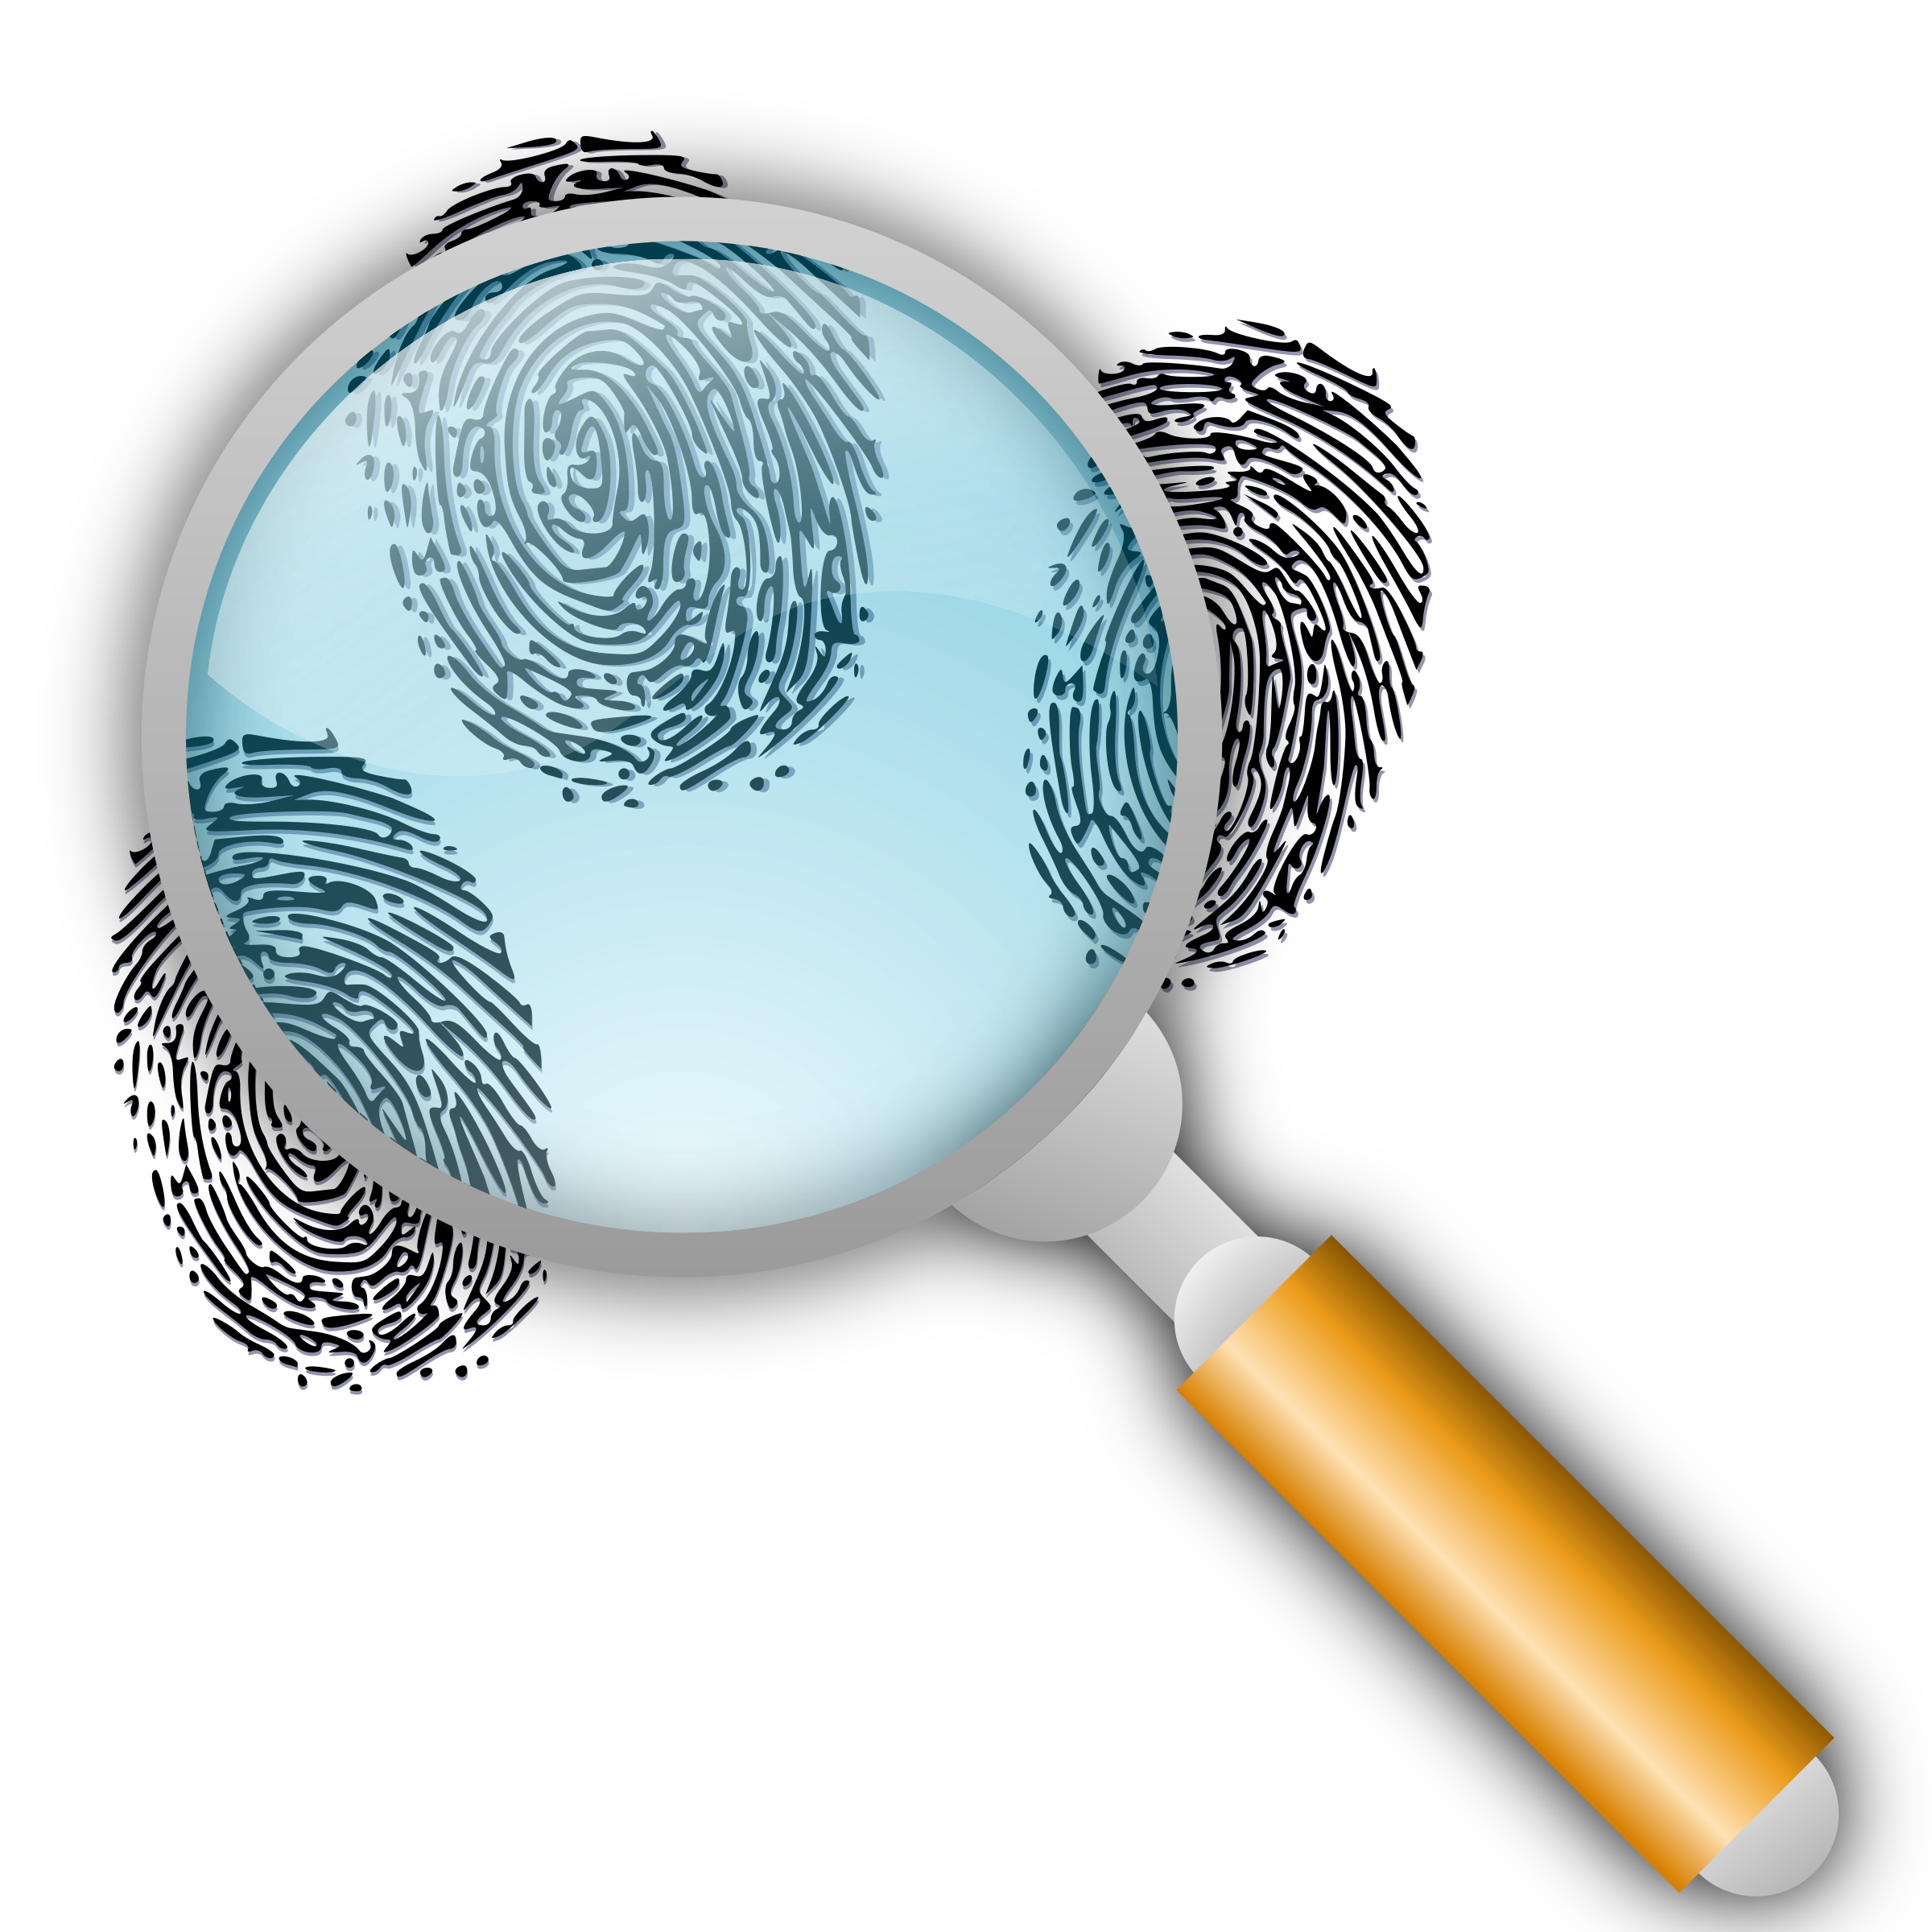 Clipart - Fingerprint Search with Slight Magnification